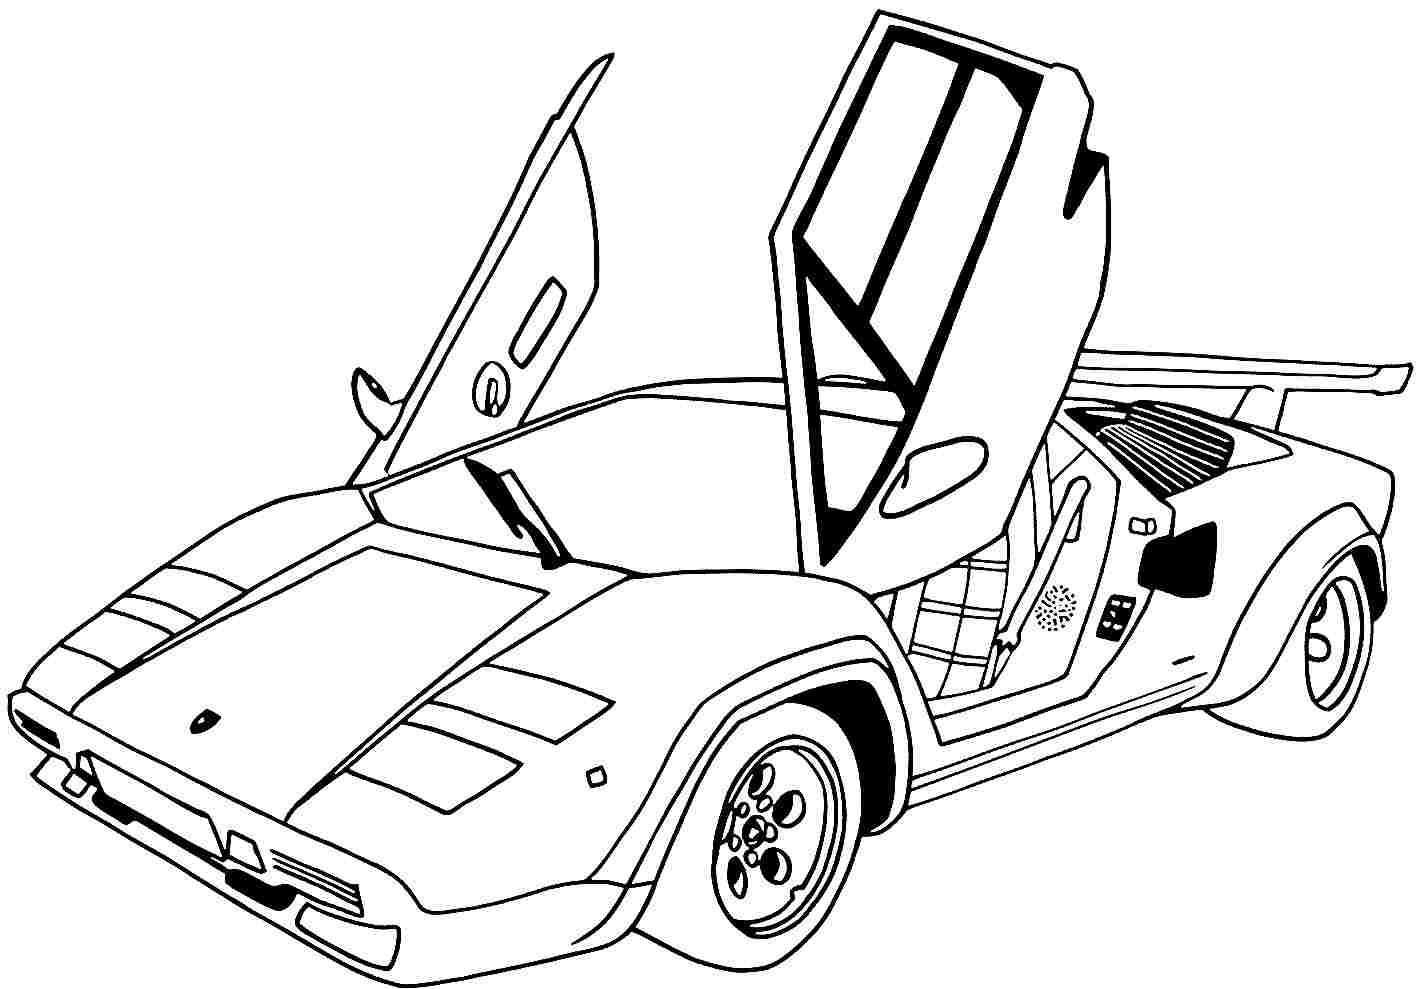 coloring pages for boys cars coloring pages for boys cars coloring pages boys for cars